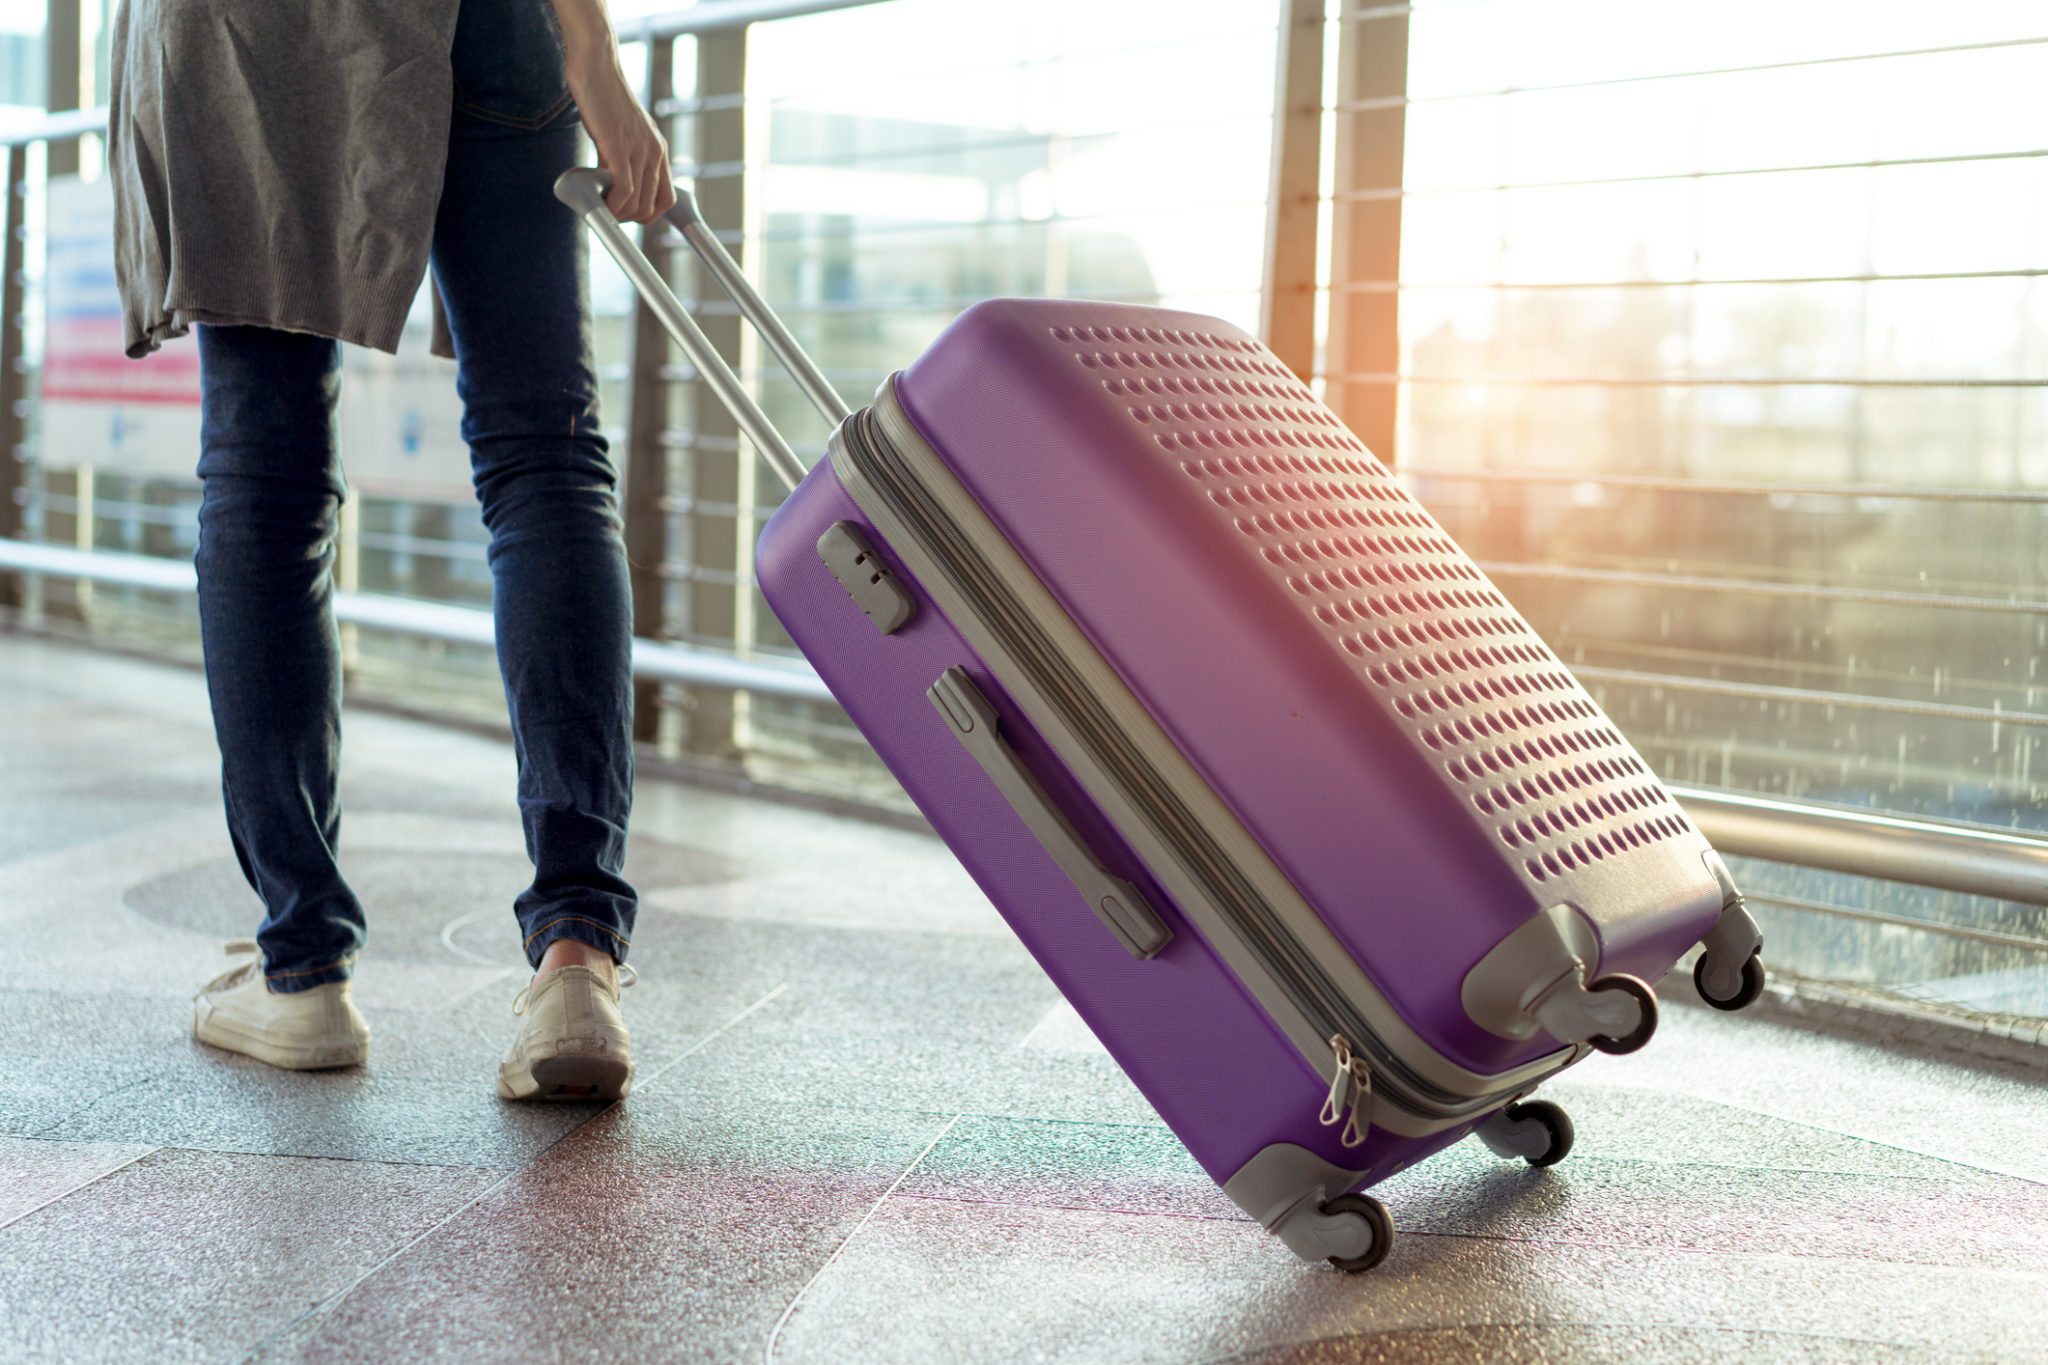 Young girl traveler walking with carrying hold suitcase luggage and passenger for tour travel booking ticket flight in airport international vacation time in holiday rest and relaxation.